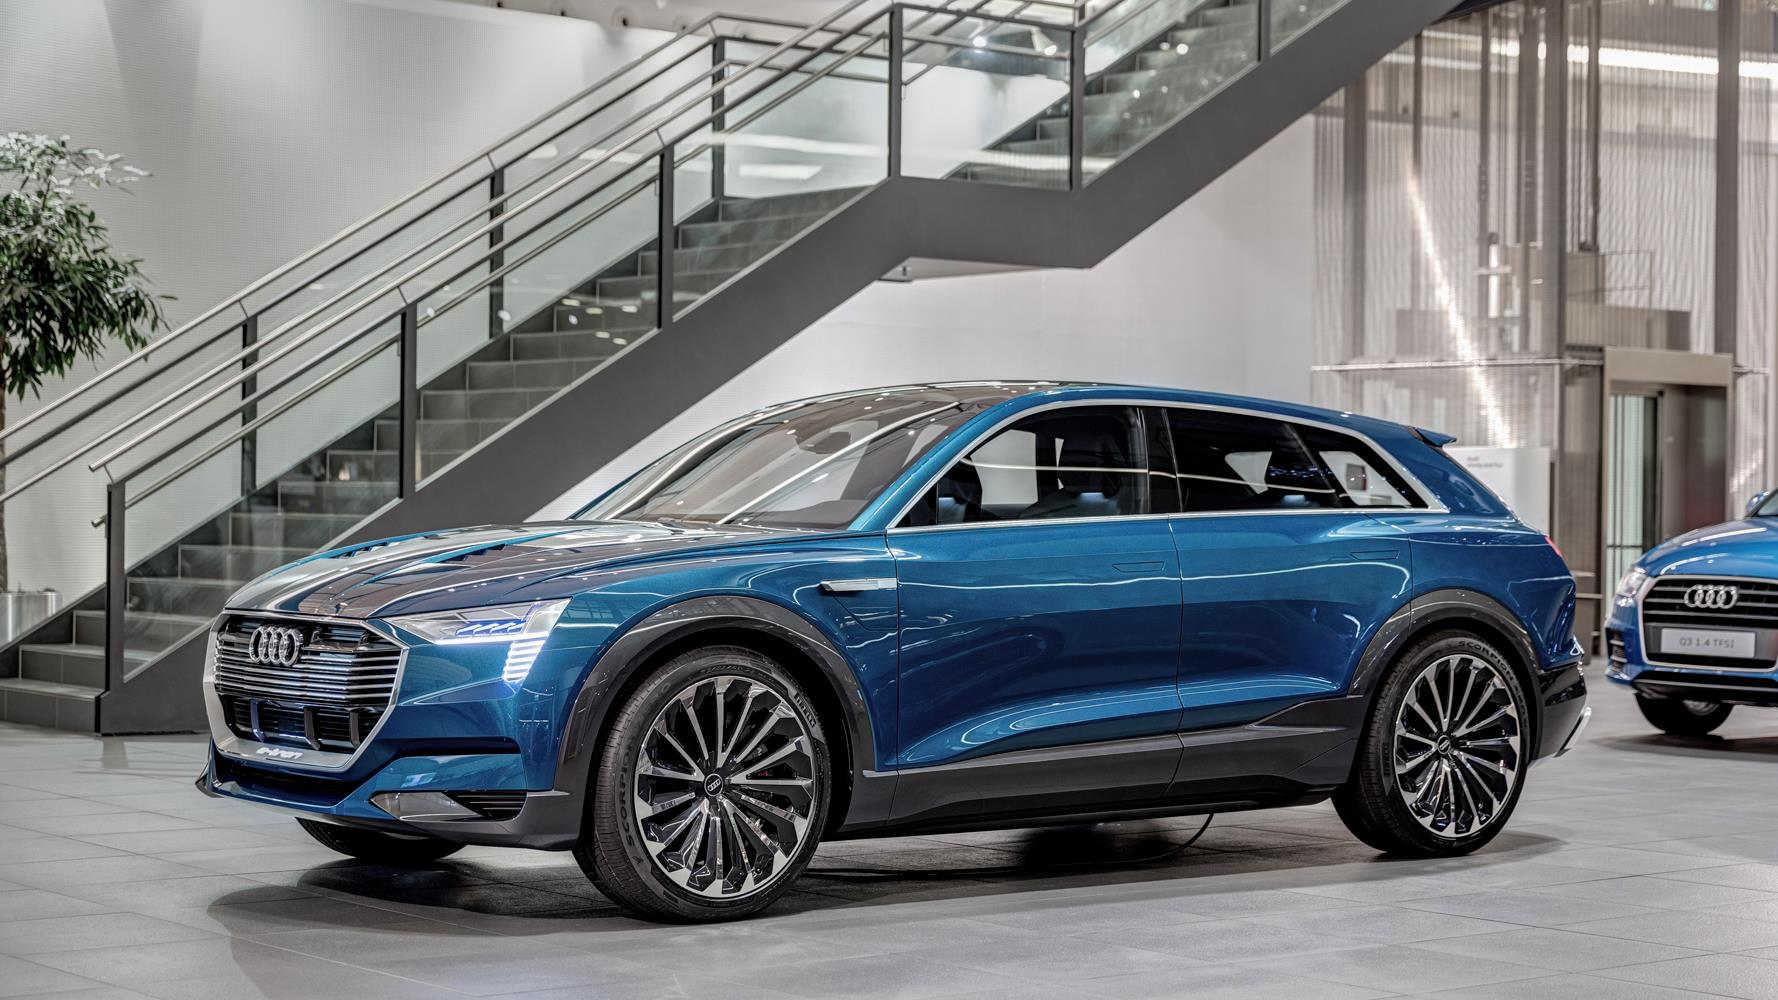 Audi E Tron Quattro Concept Arrives At Forum Neckarsulm